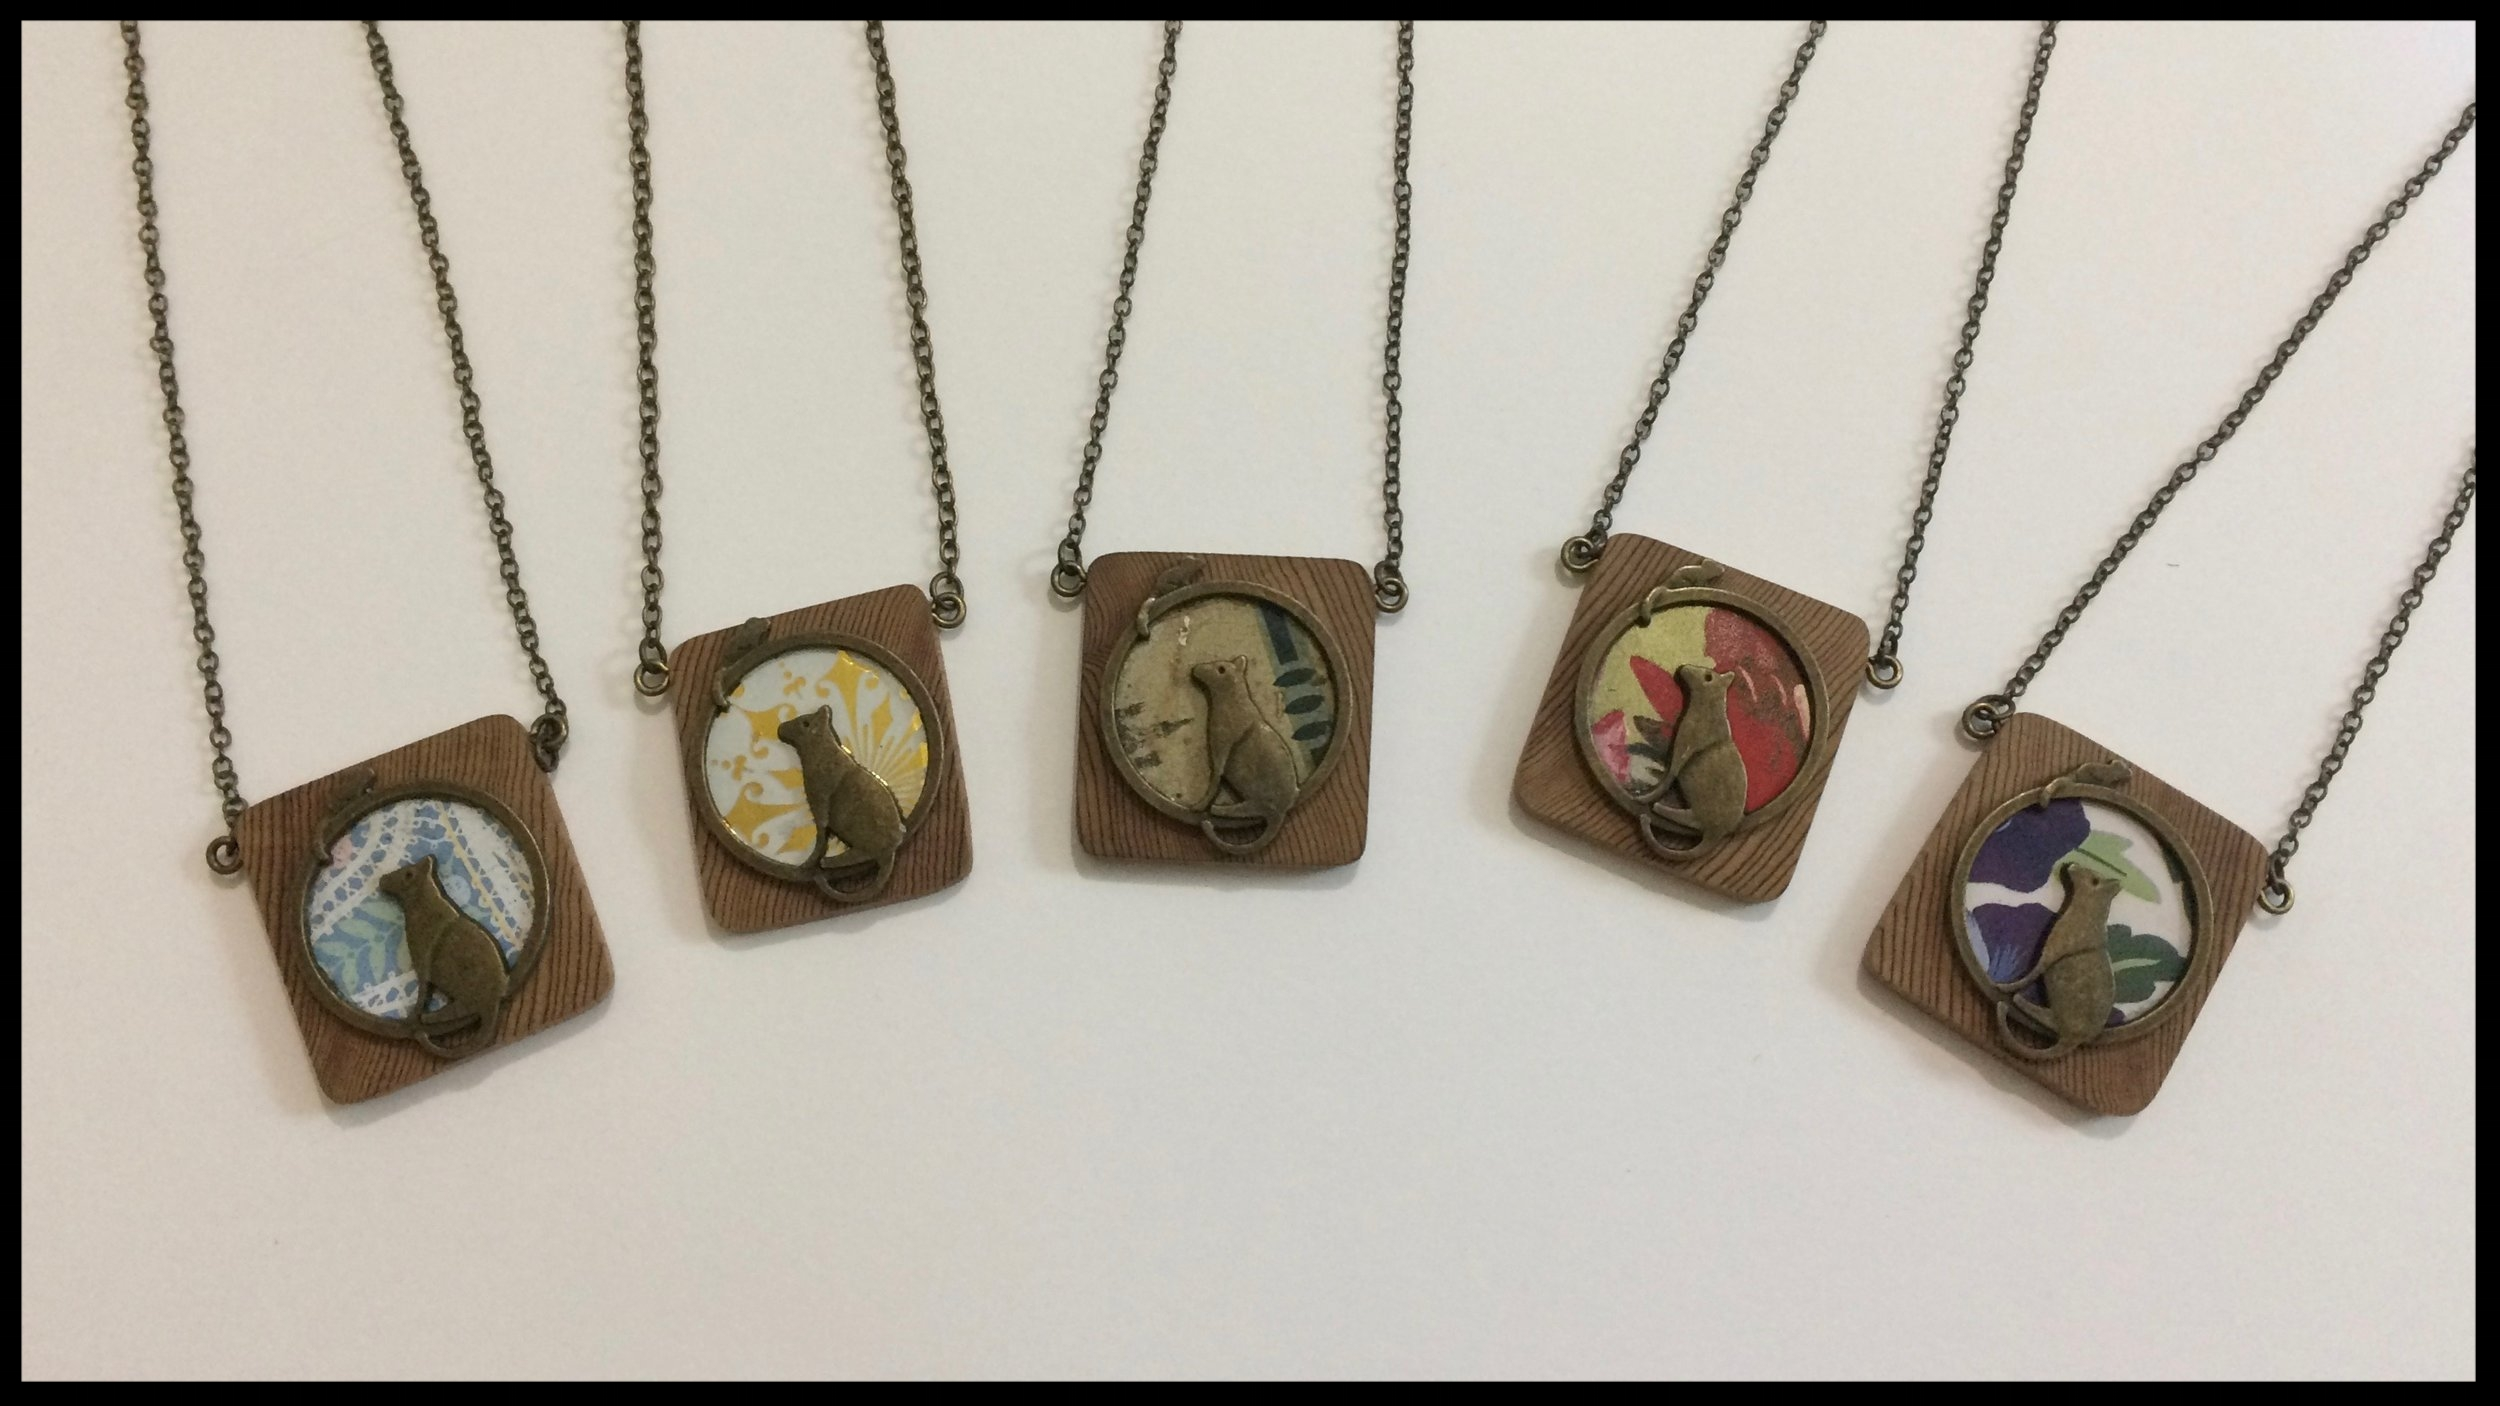 Cat - Tin, metal and wood necklaces